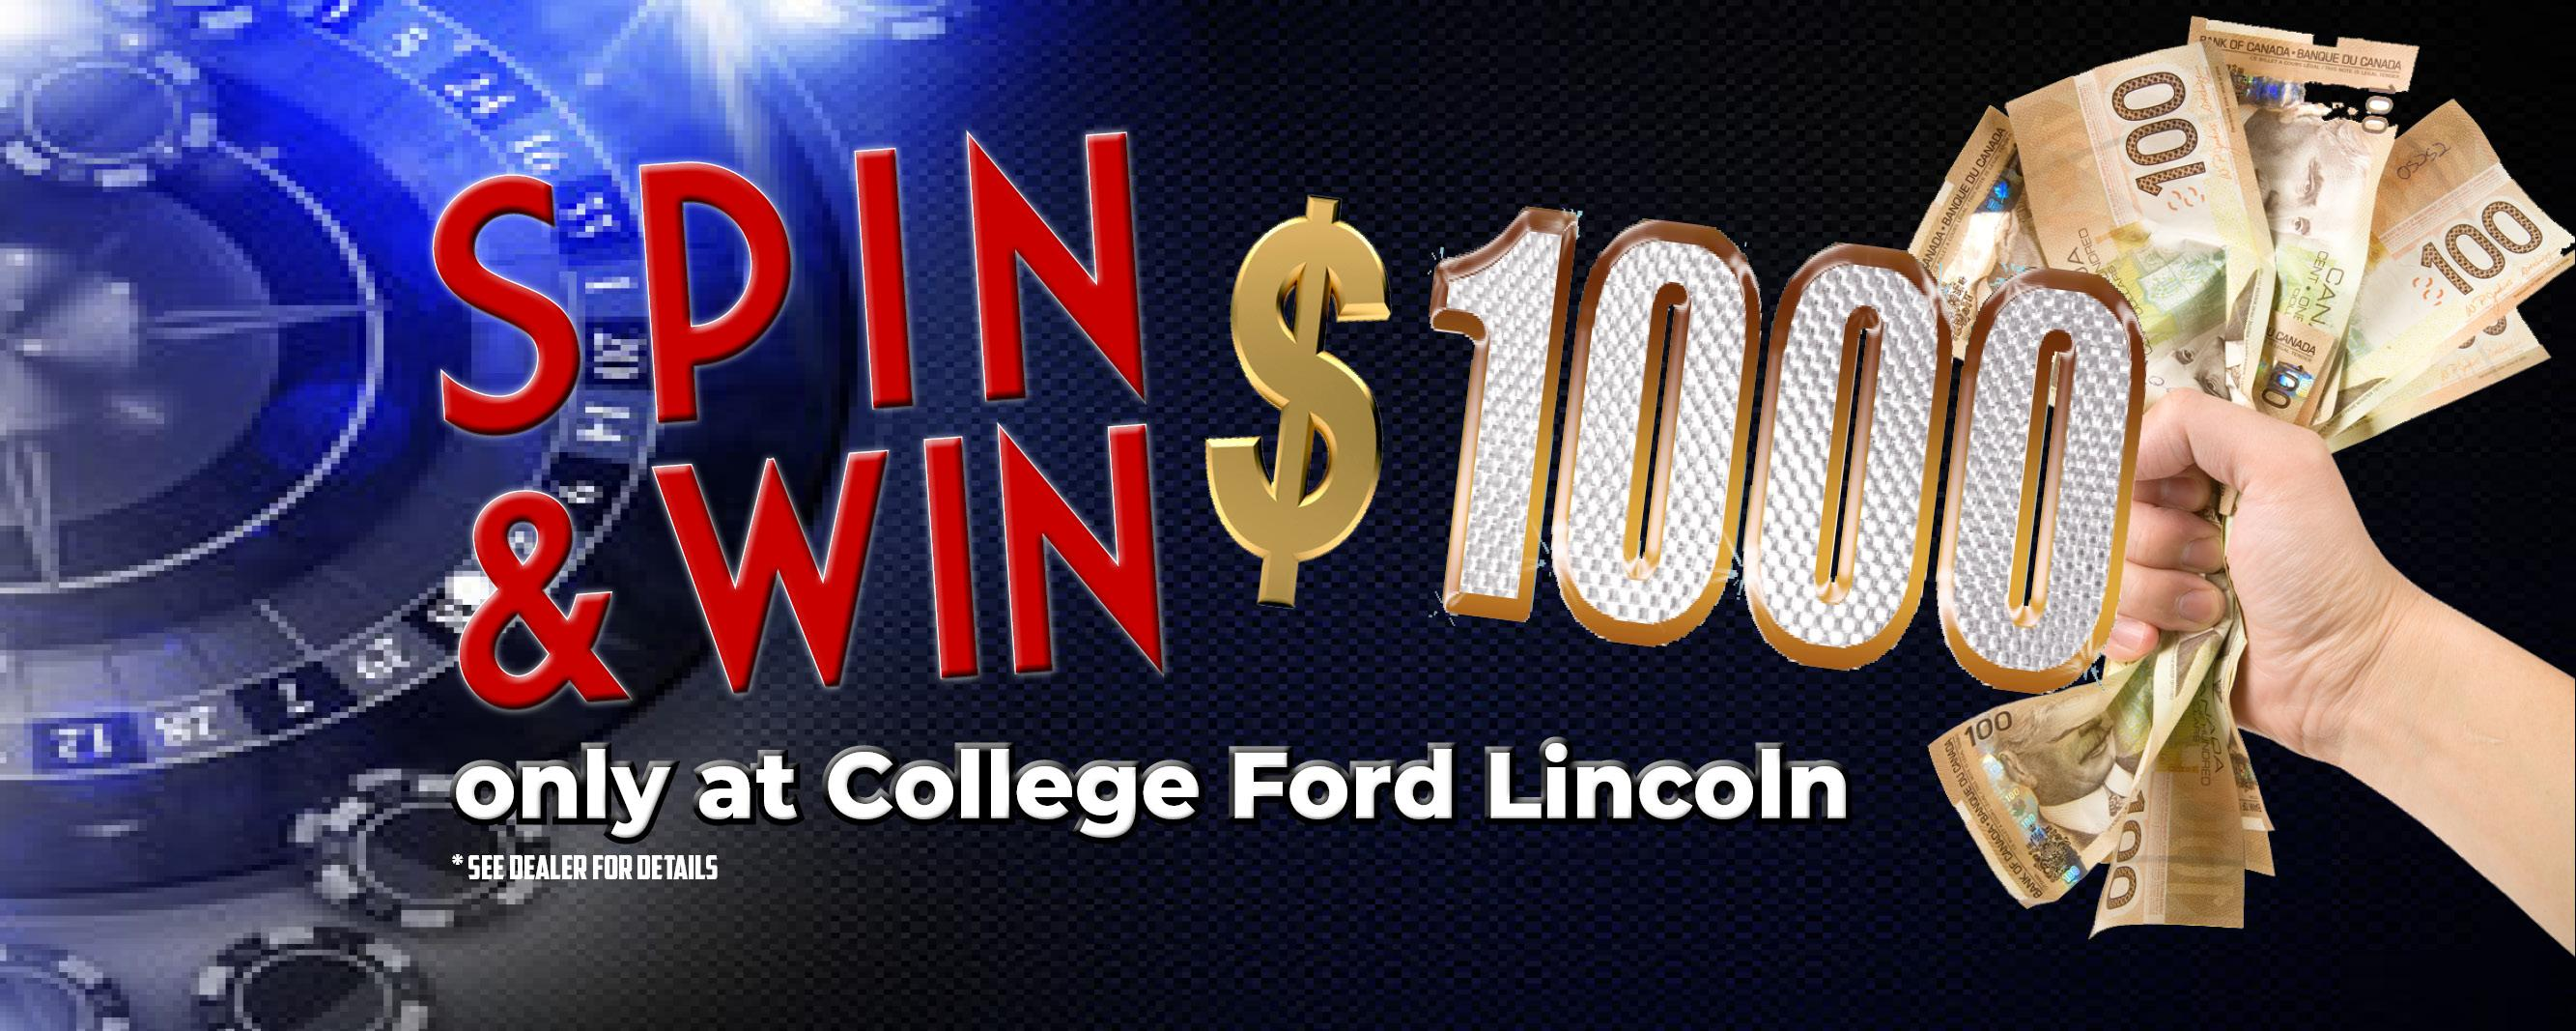 Spin and Win up to $1000 Cash!